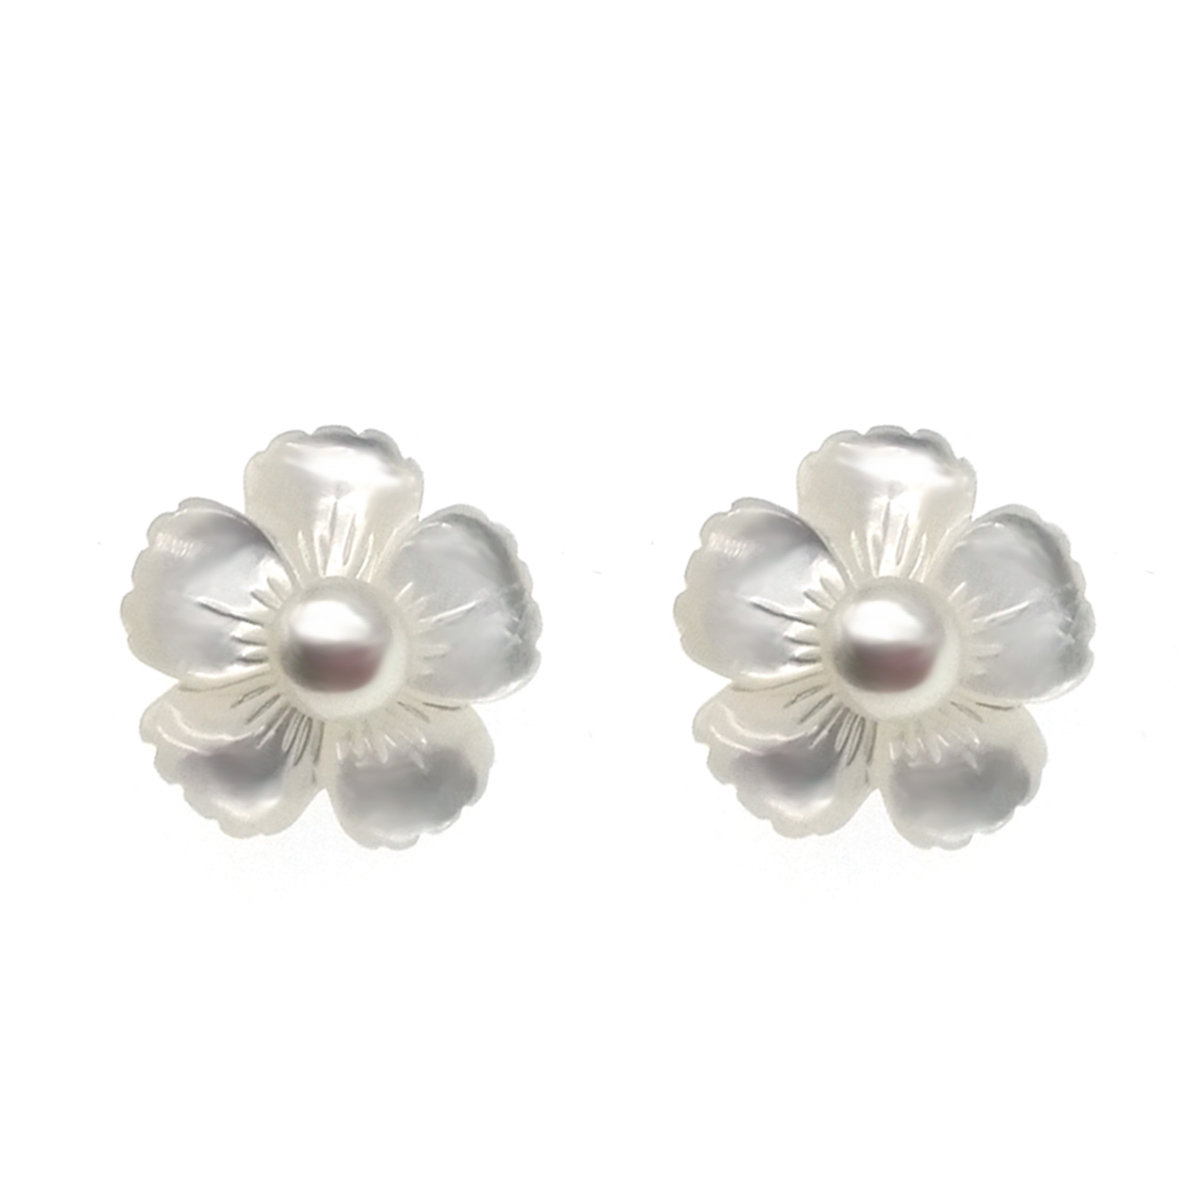 Forget-me-not- Cultured fresh water pearl & MOP with 925 silver Earring